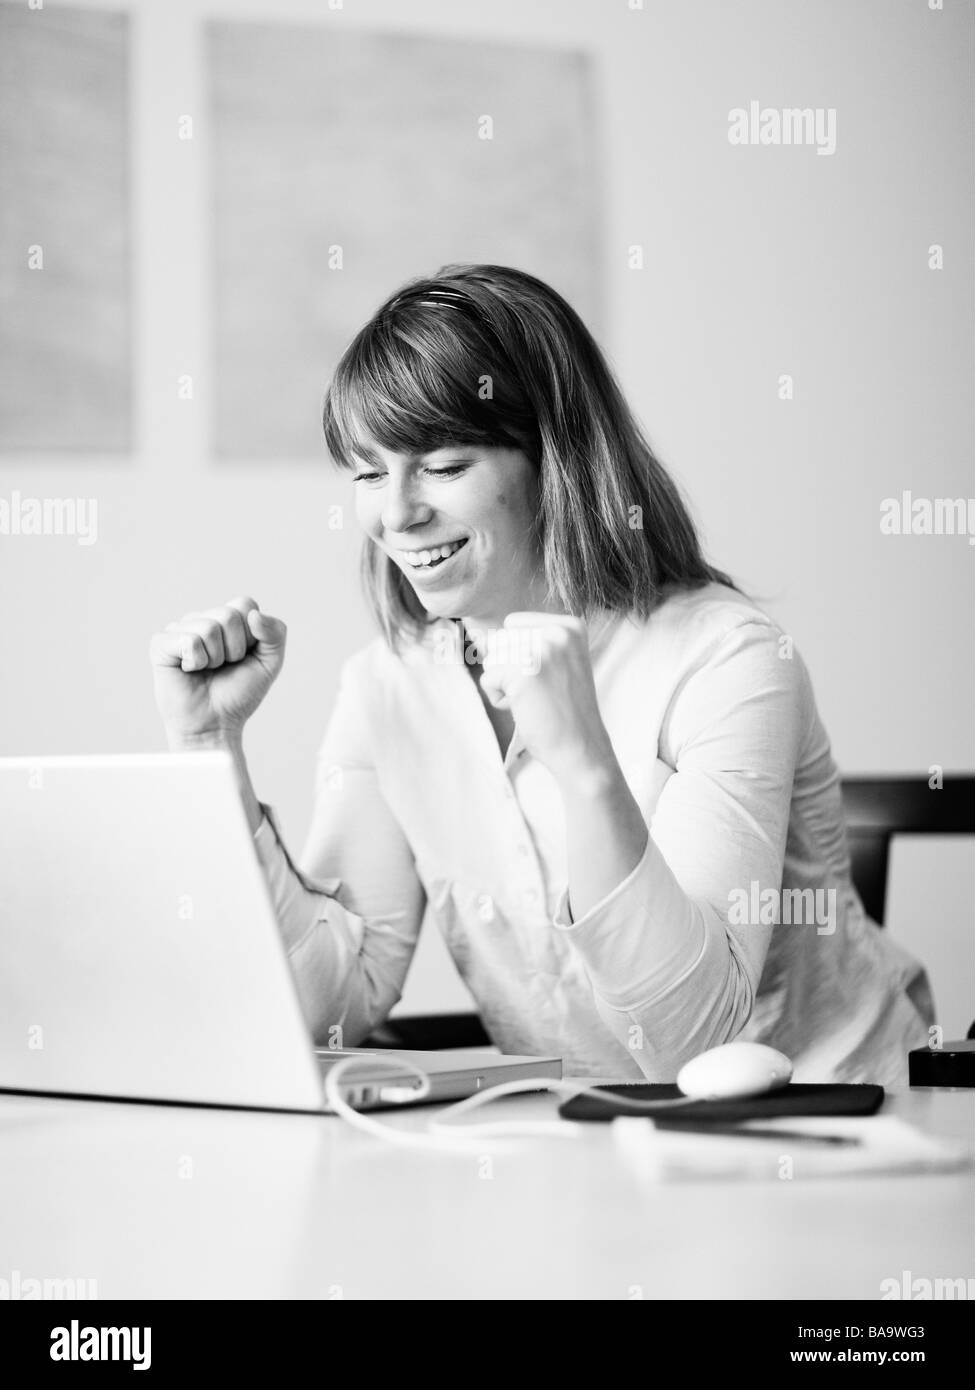 A woman using a computer, Sweden. - Stock Image